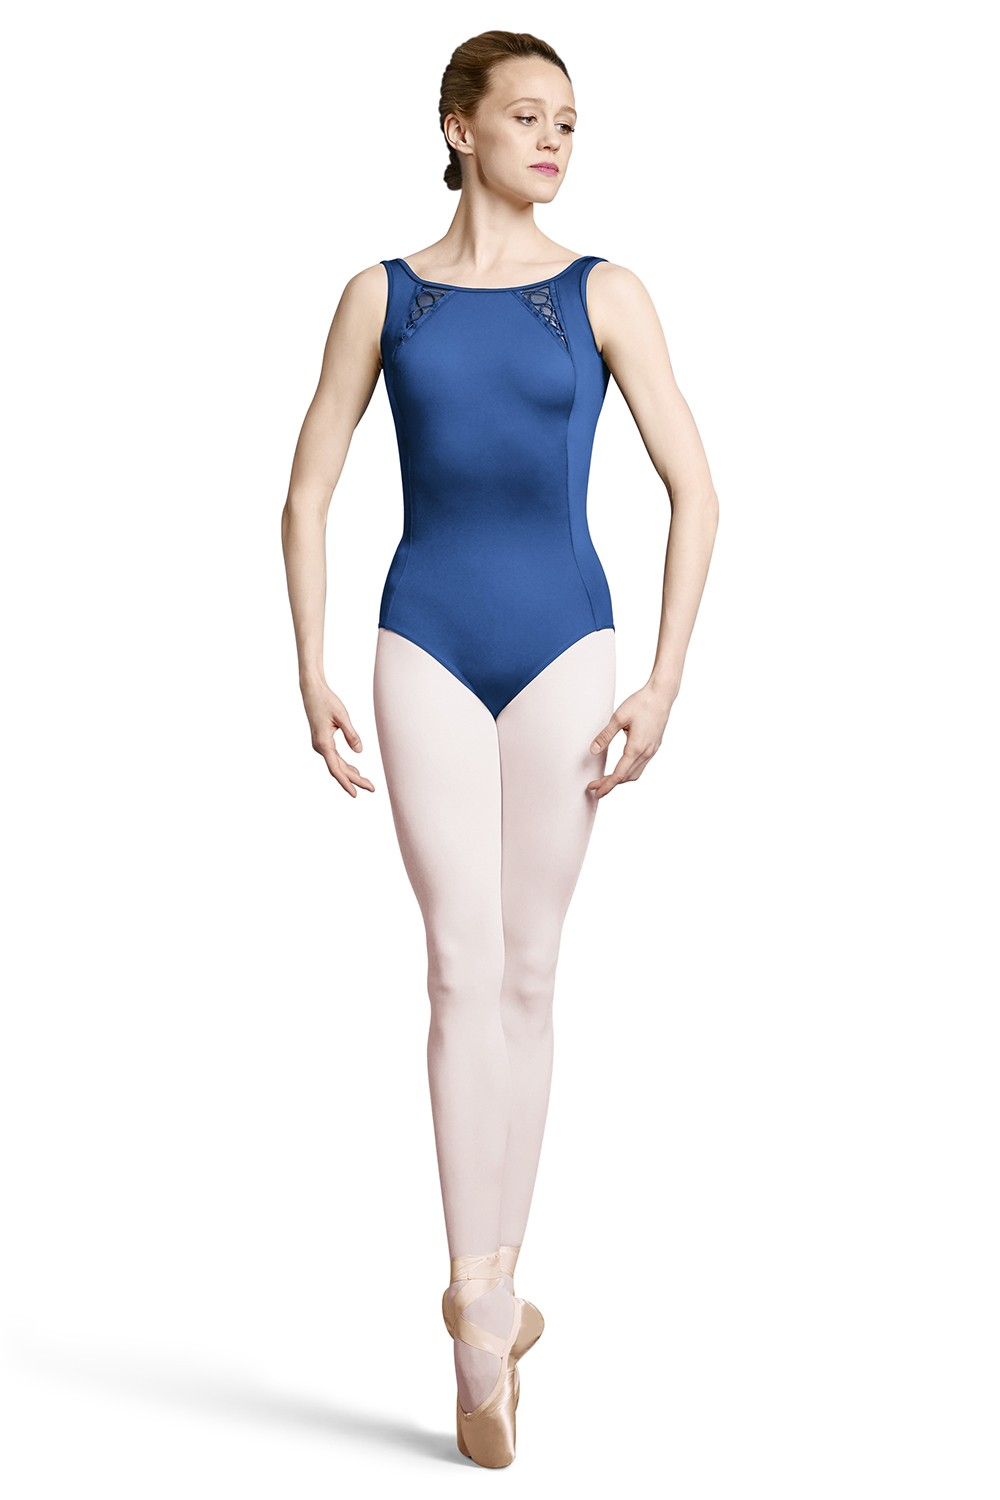 Evander Women's Dance Leotards